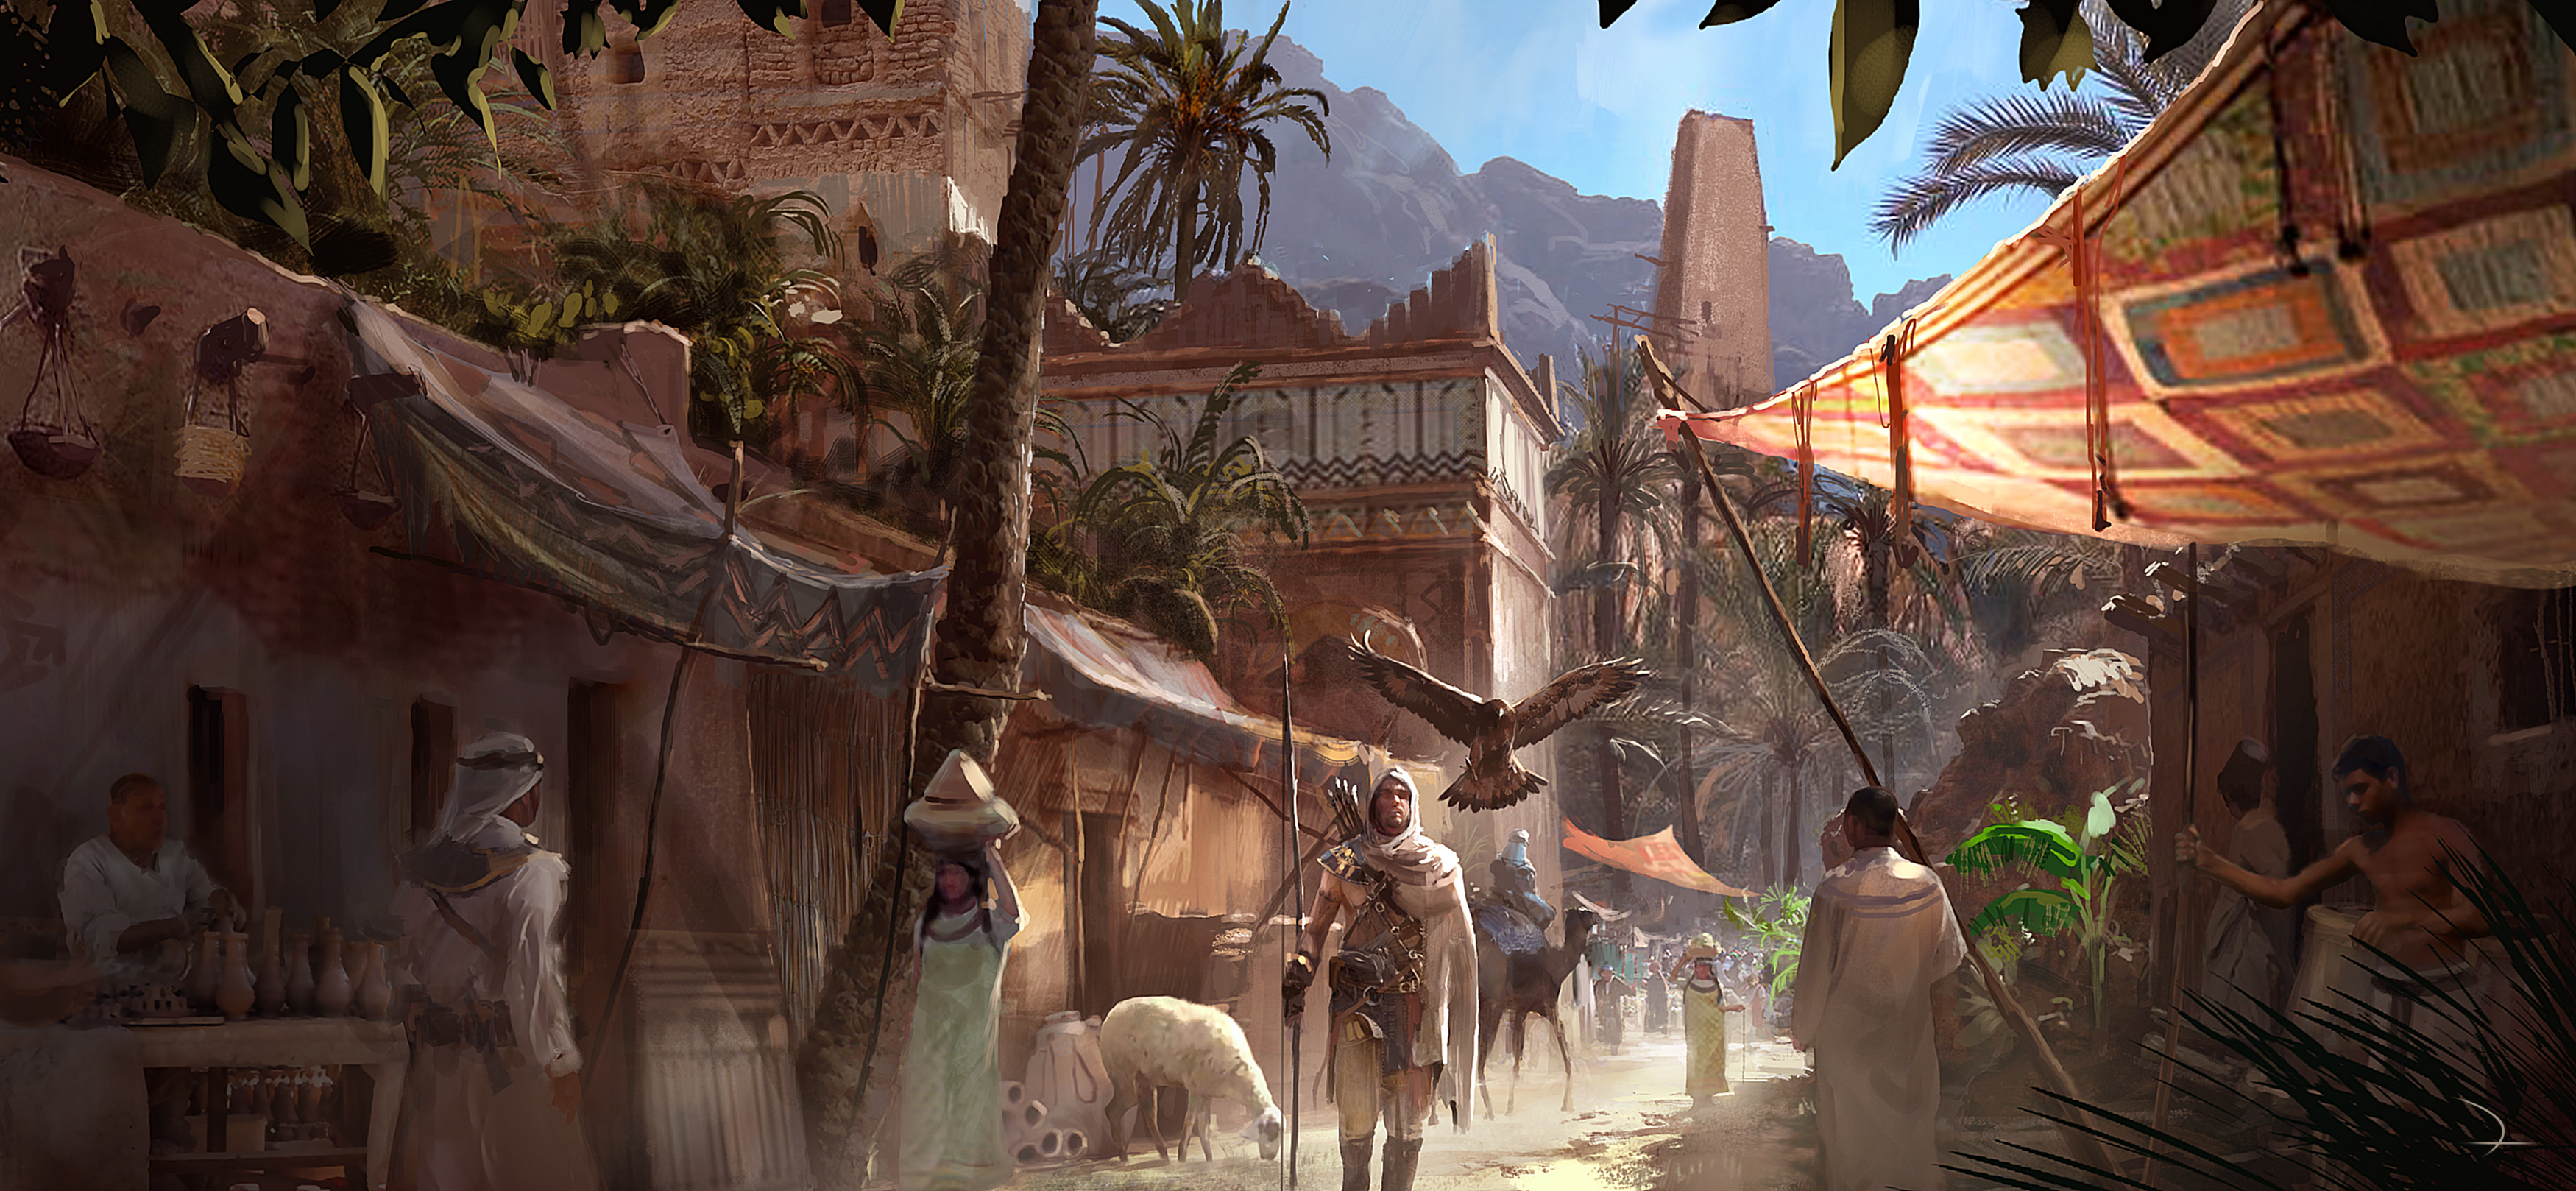 Assassin S Creed Origins 4k Screenshots And Concept Art Leaked